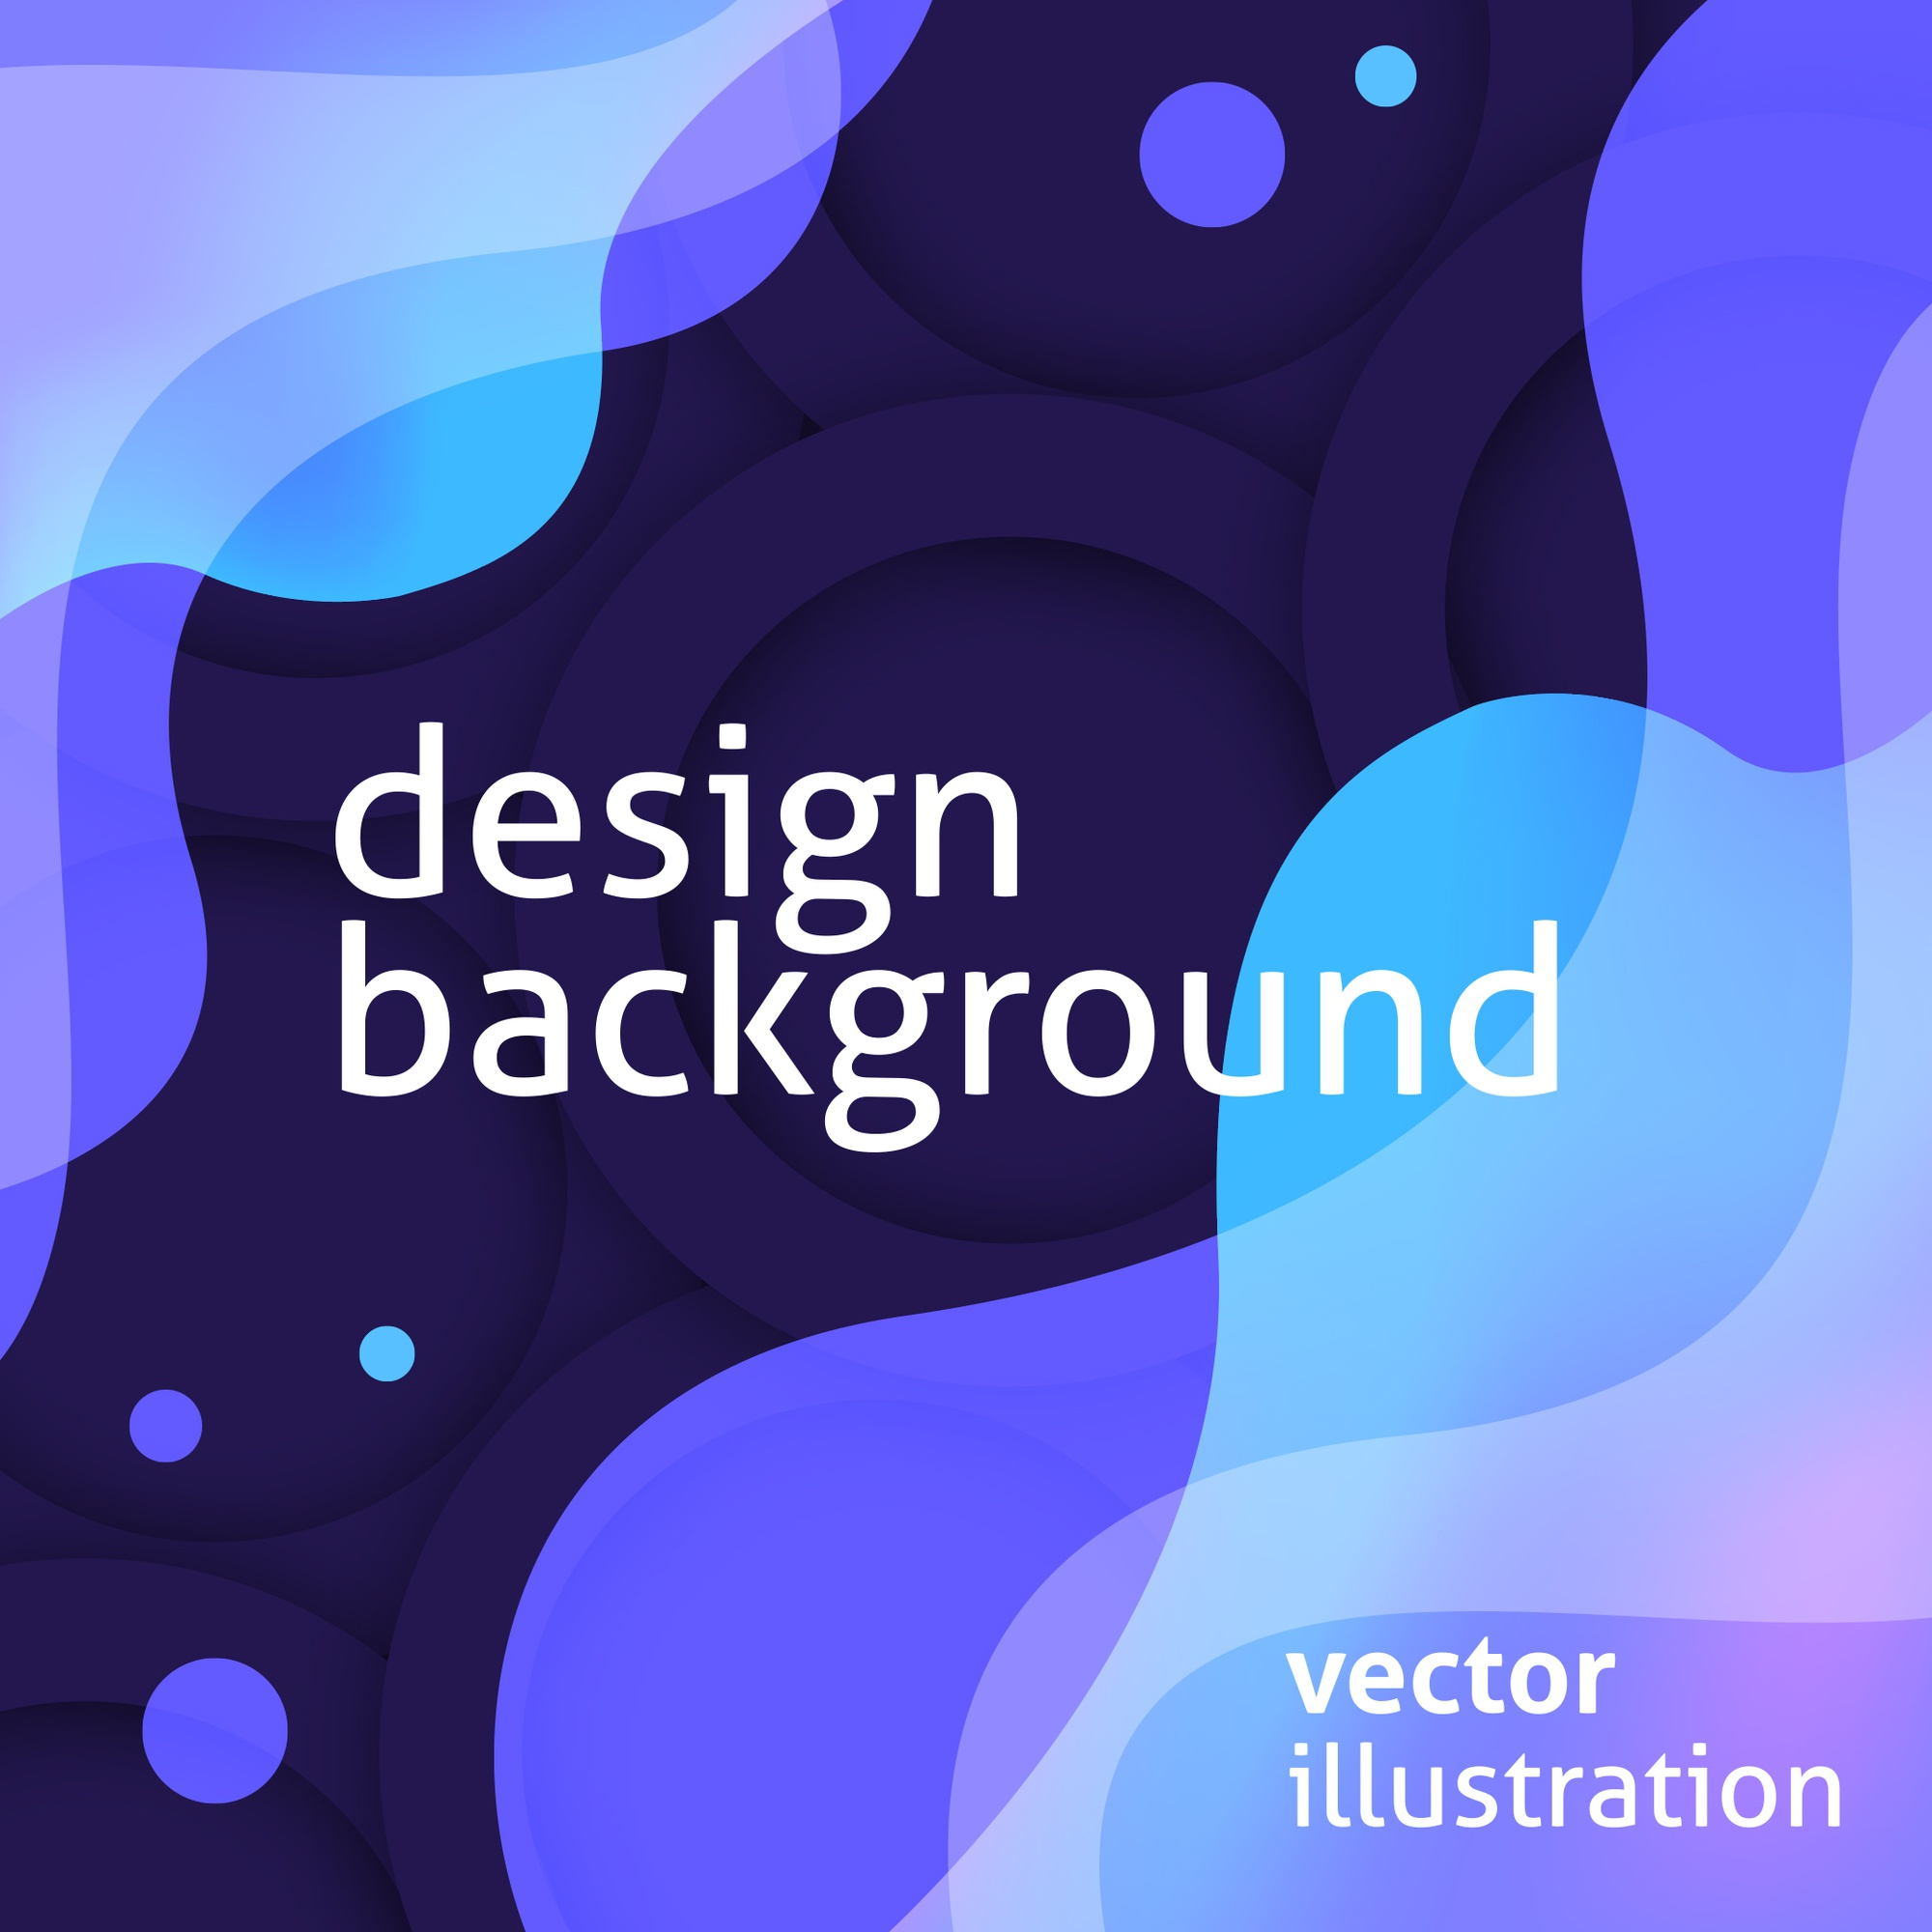 Modern purple background with blue liquid shapes